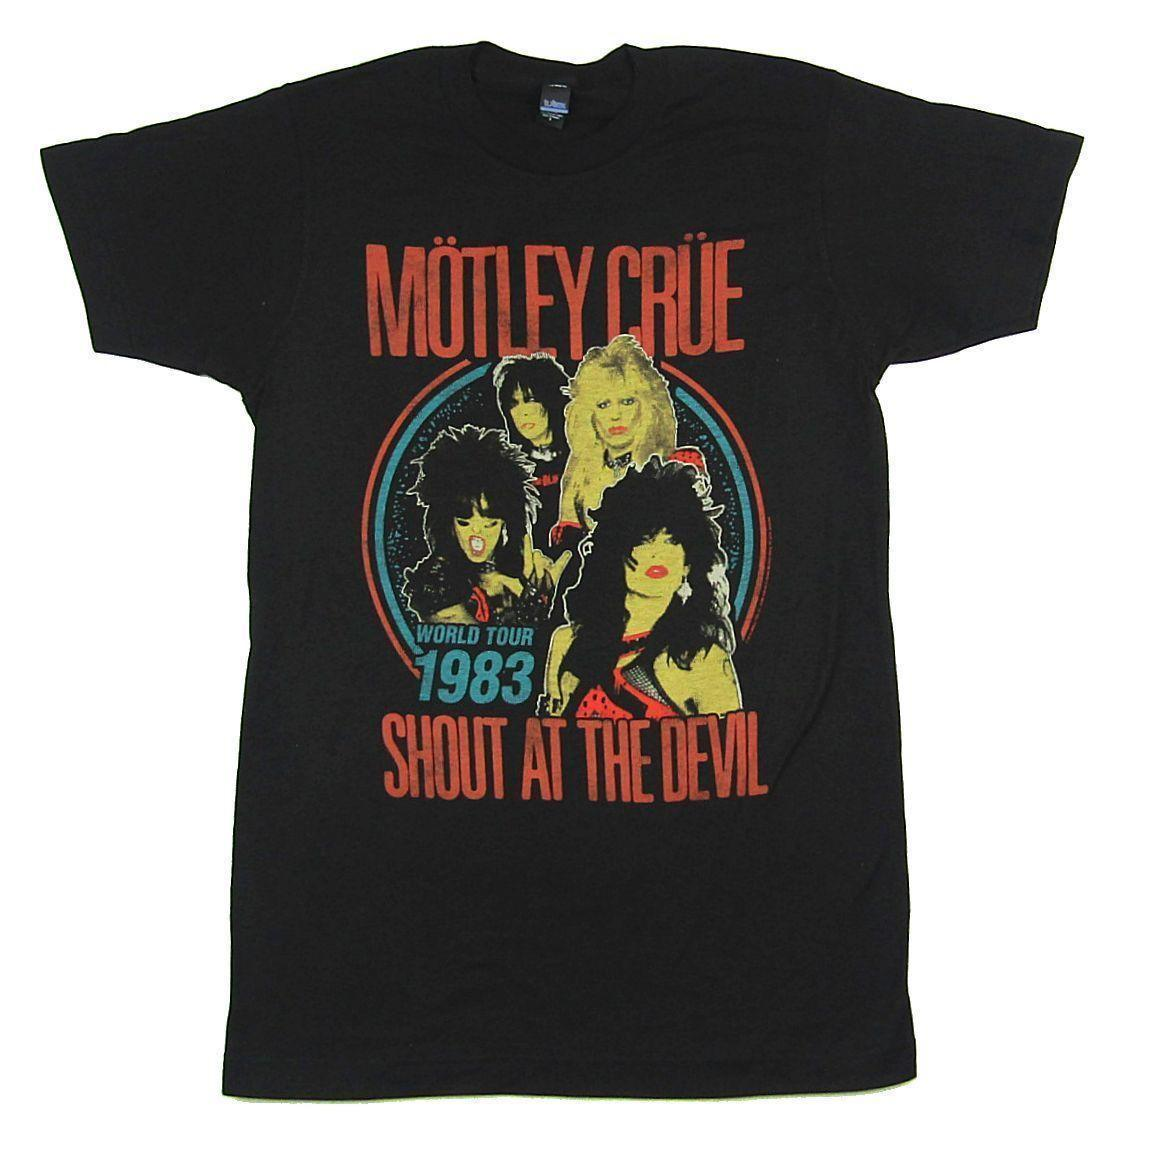 d64579f72dc Motley Crue Shout At The Devil World Tour 1983 T Shirt New Official Reissue  New 2018 Hot Summer Casual T Shirt Printing Tea Shirt Vintage Tee Shirts  From ...